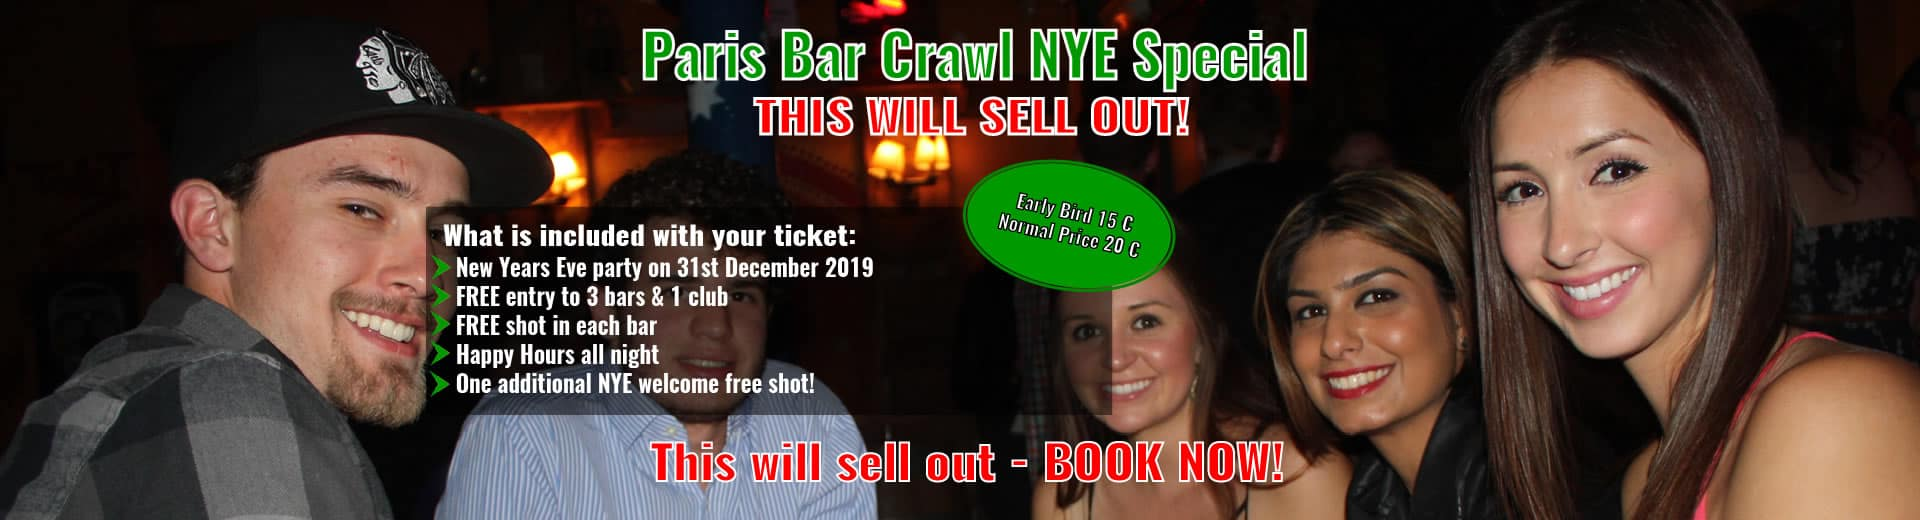 New Years Eve Paris Bar Crawl